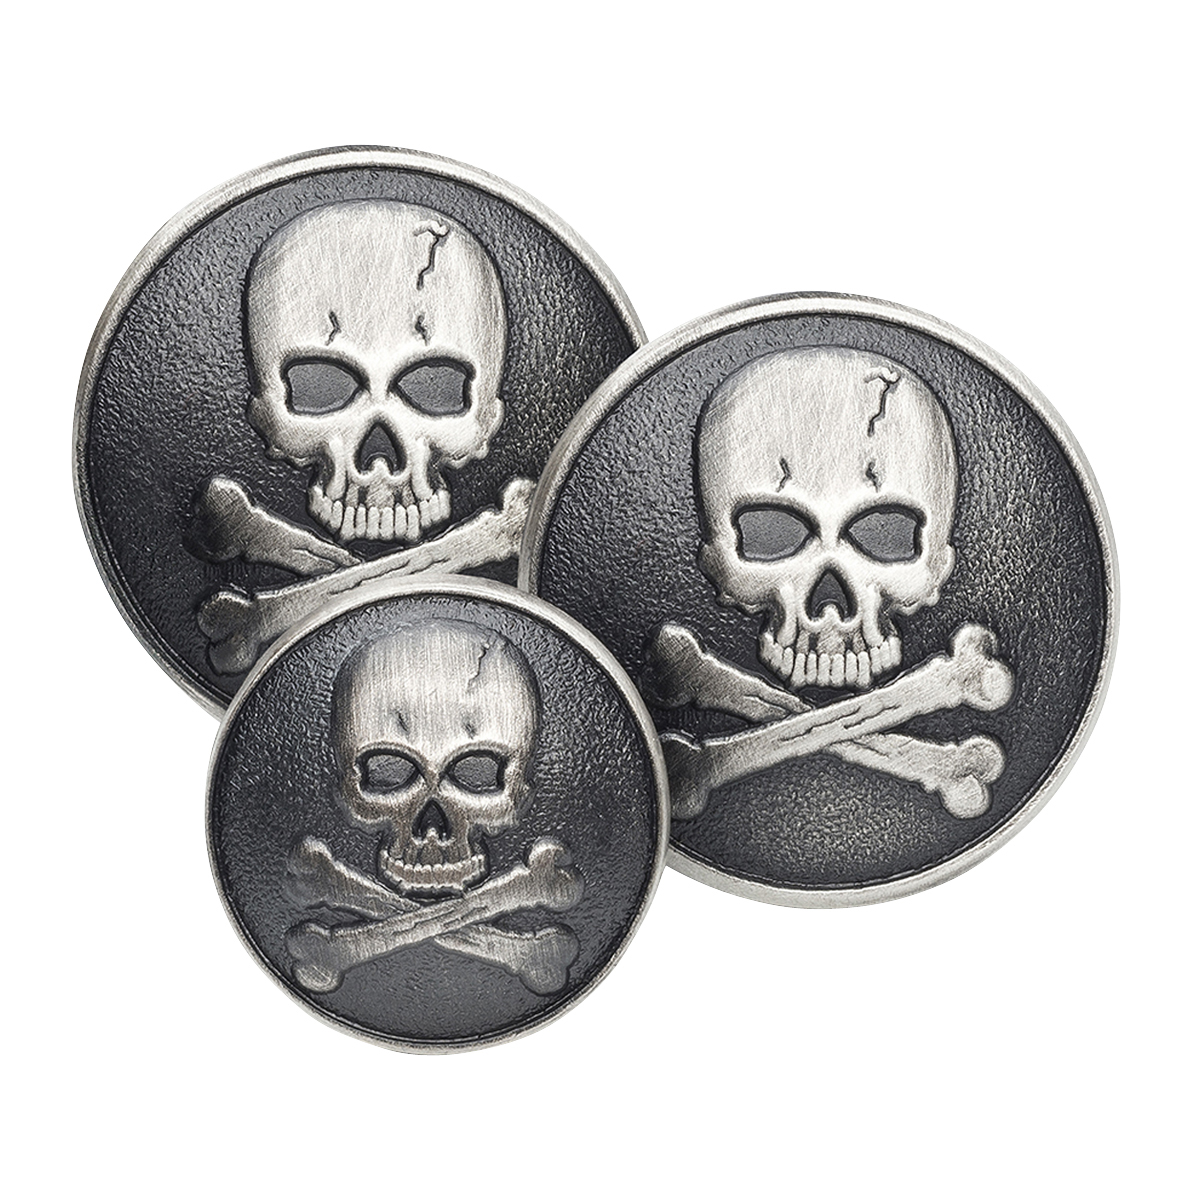 Skull & Crossbones Double Breasted Blazer Button Set